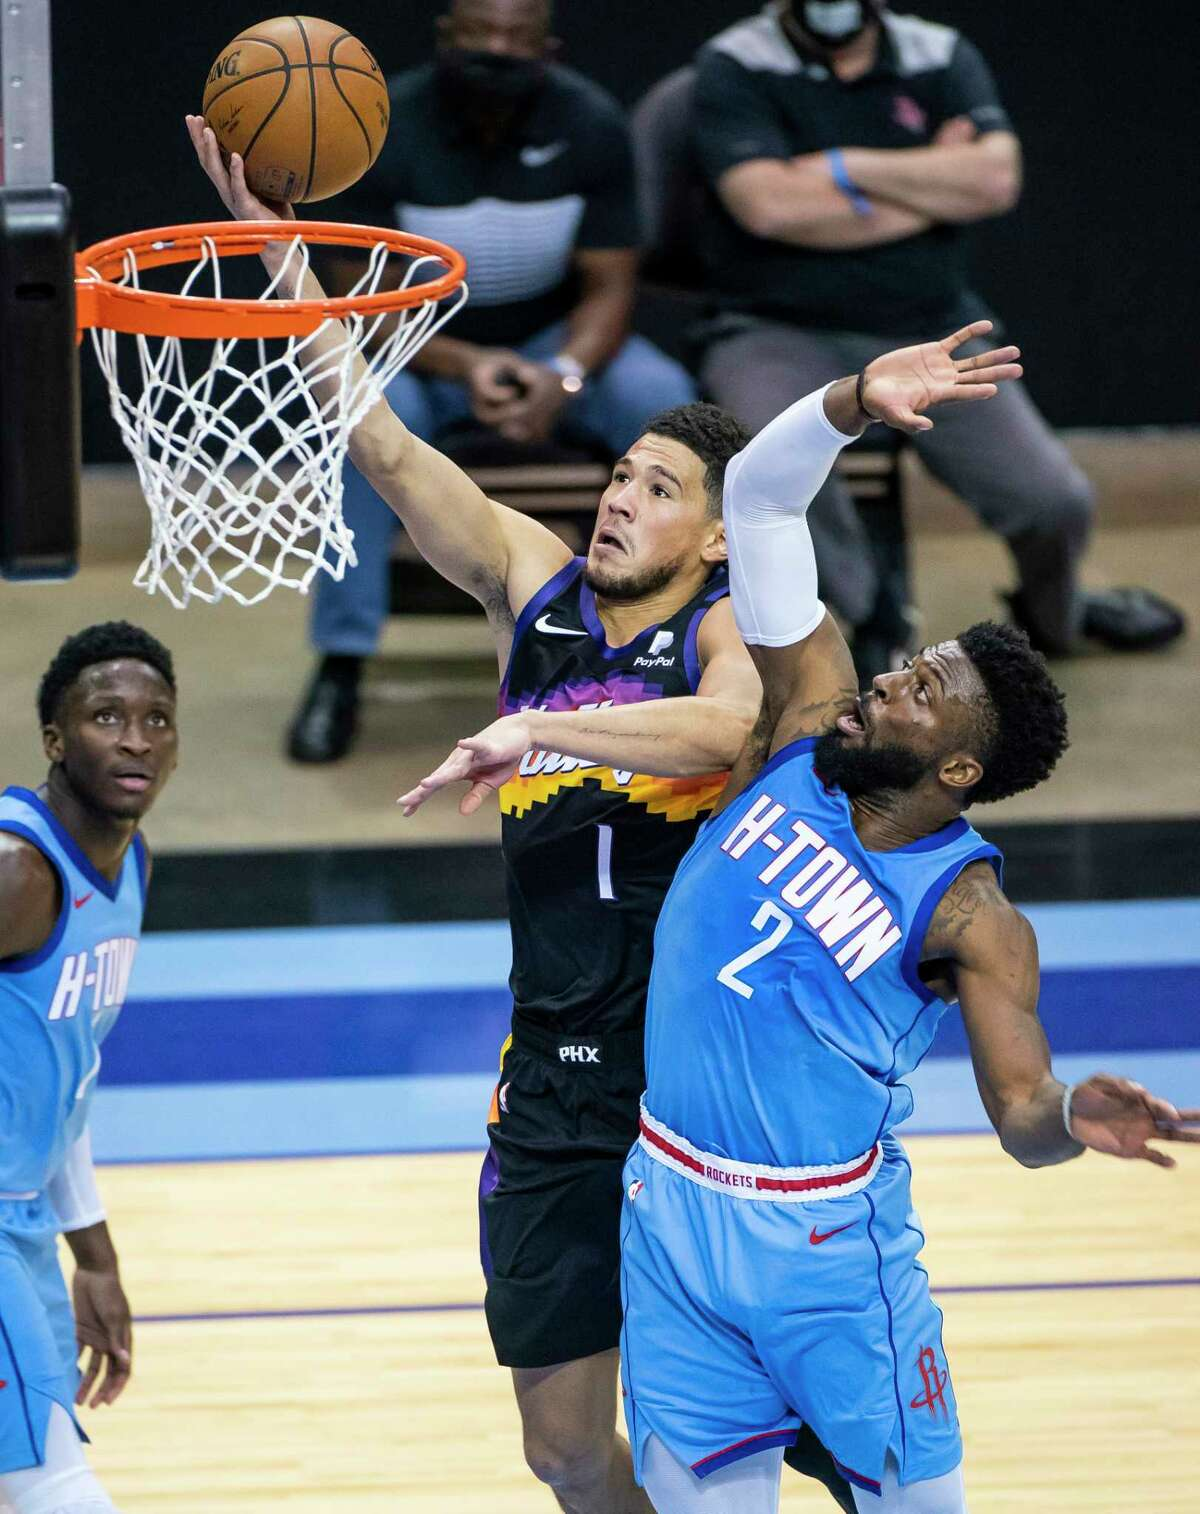 Phoenix Suns guard Devin Booker (1) shoots around Houston Rockets guard David Nwaba (2) during the fourth quarter of an NBA game between the Houston Rockets and Phoenix Suns on Wednesday, Jan. 20, 2021, at Toyota Center in Houston.